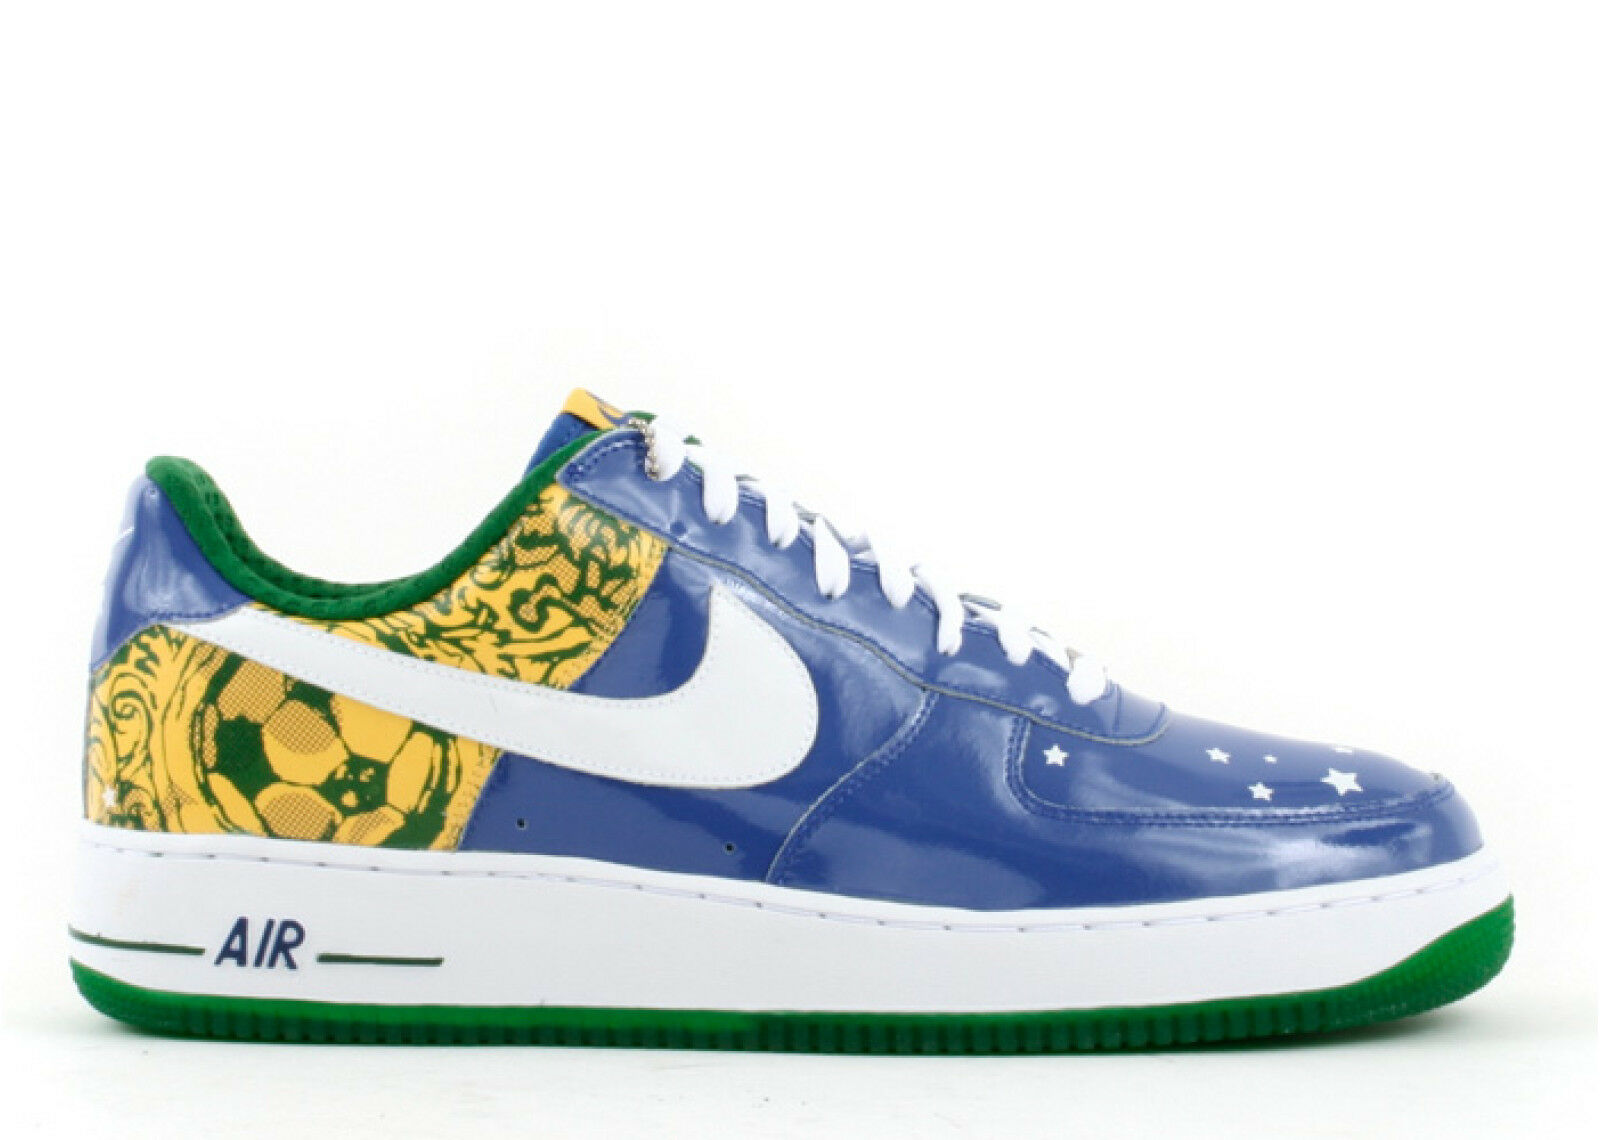 NIKE AIR FORCE 1 PRM RONALDINHO BRAZIL WORLD CUP Neymar Blue Yellow Green 12.5 New shoes for men and women, limited time discount